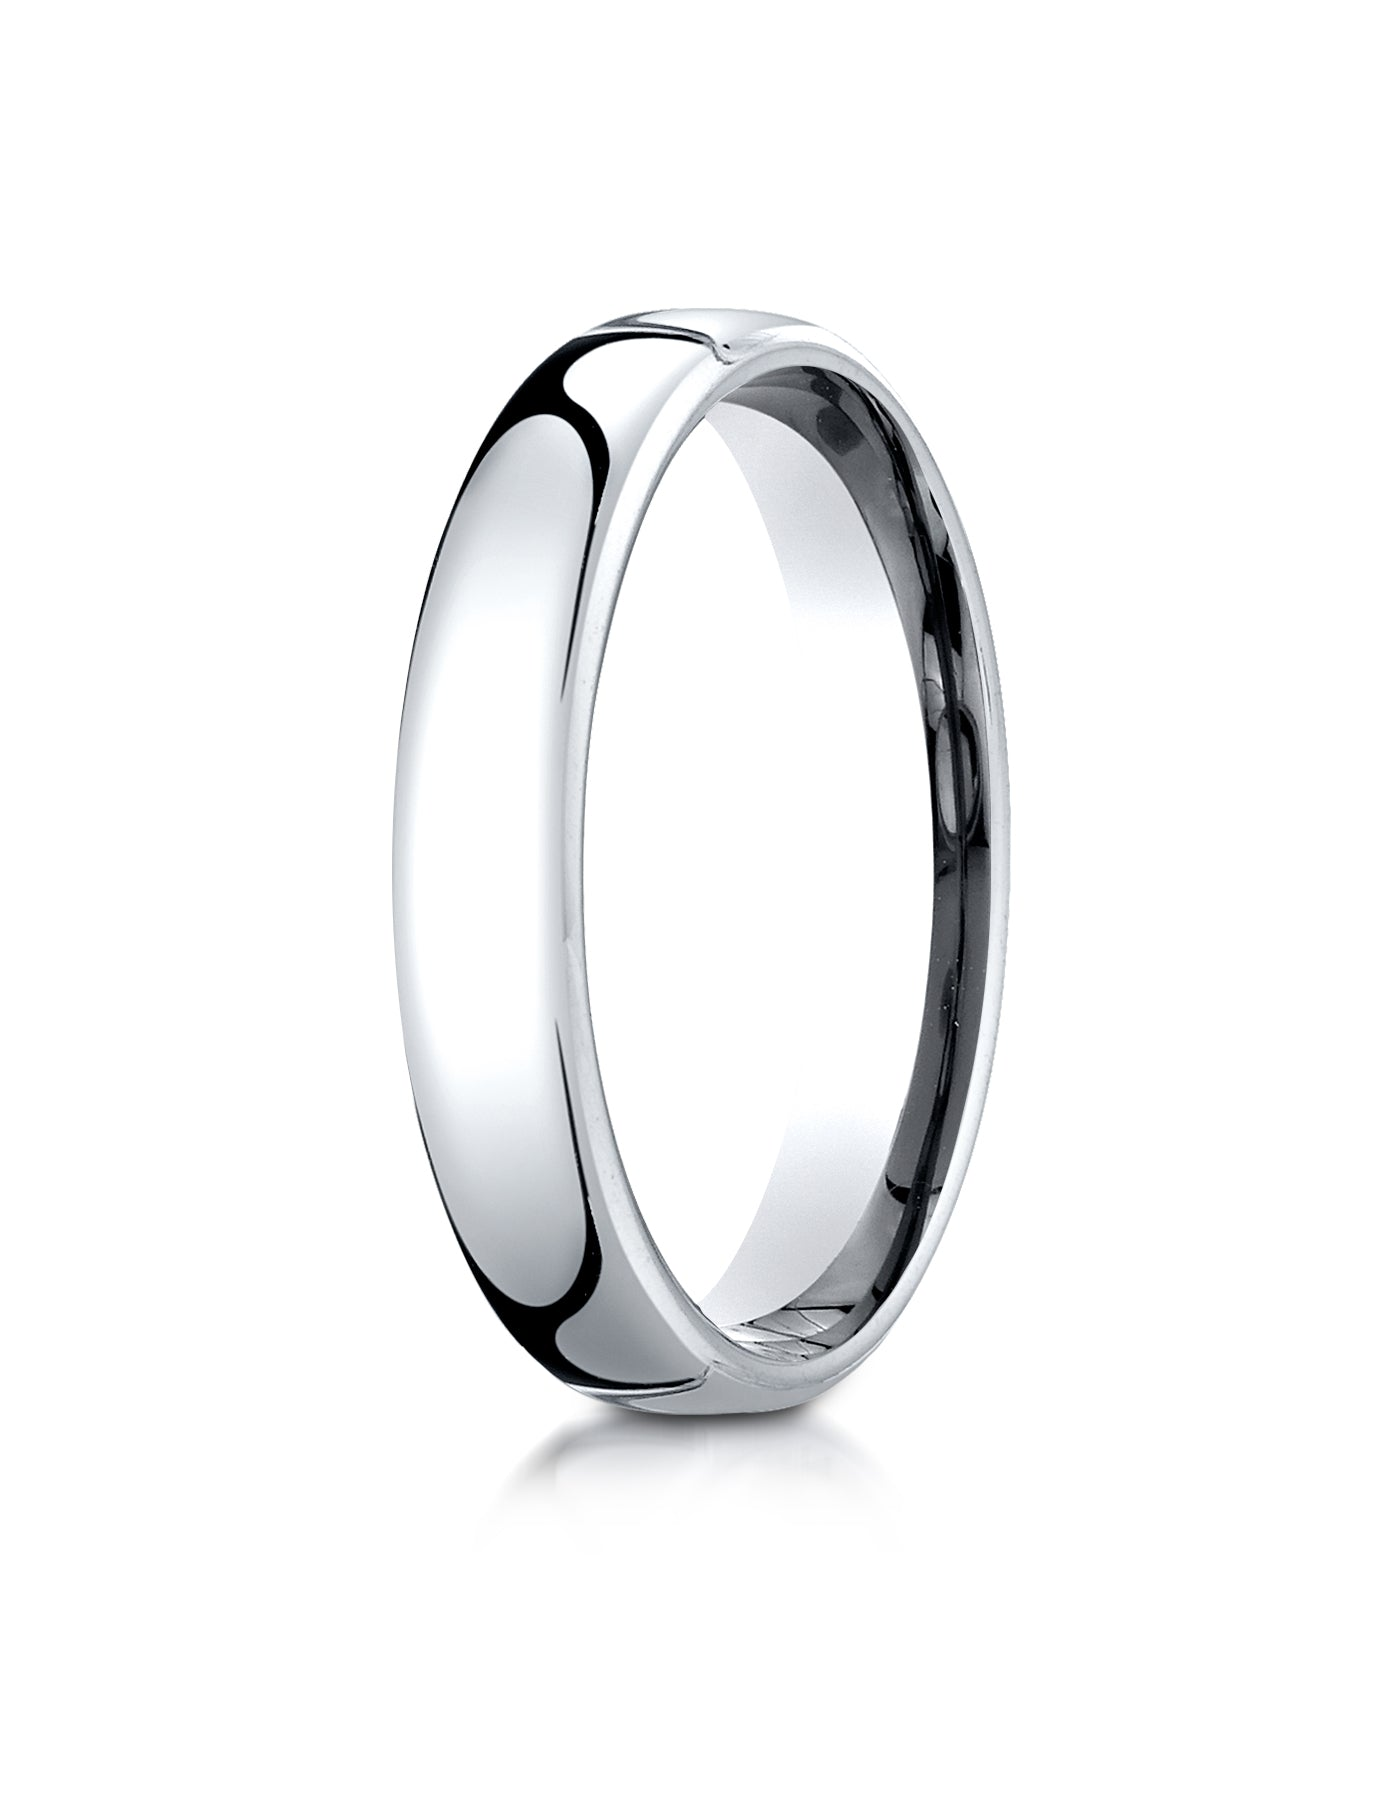 Benchmark 18K White Gold 4.5mm European Comfort Fit Wedding Band Ring (Sizes  4